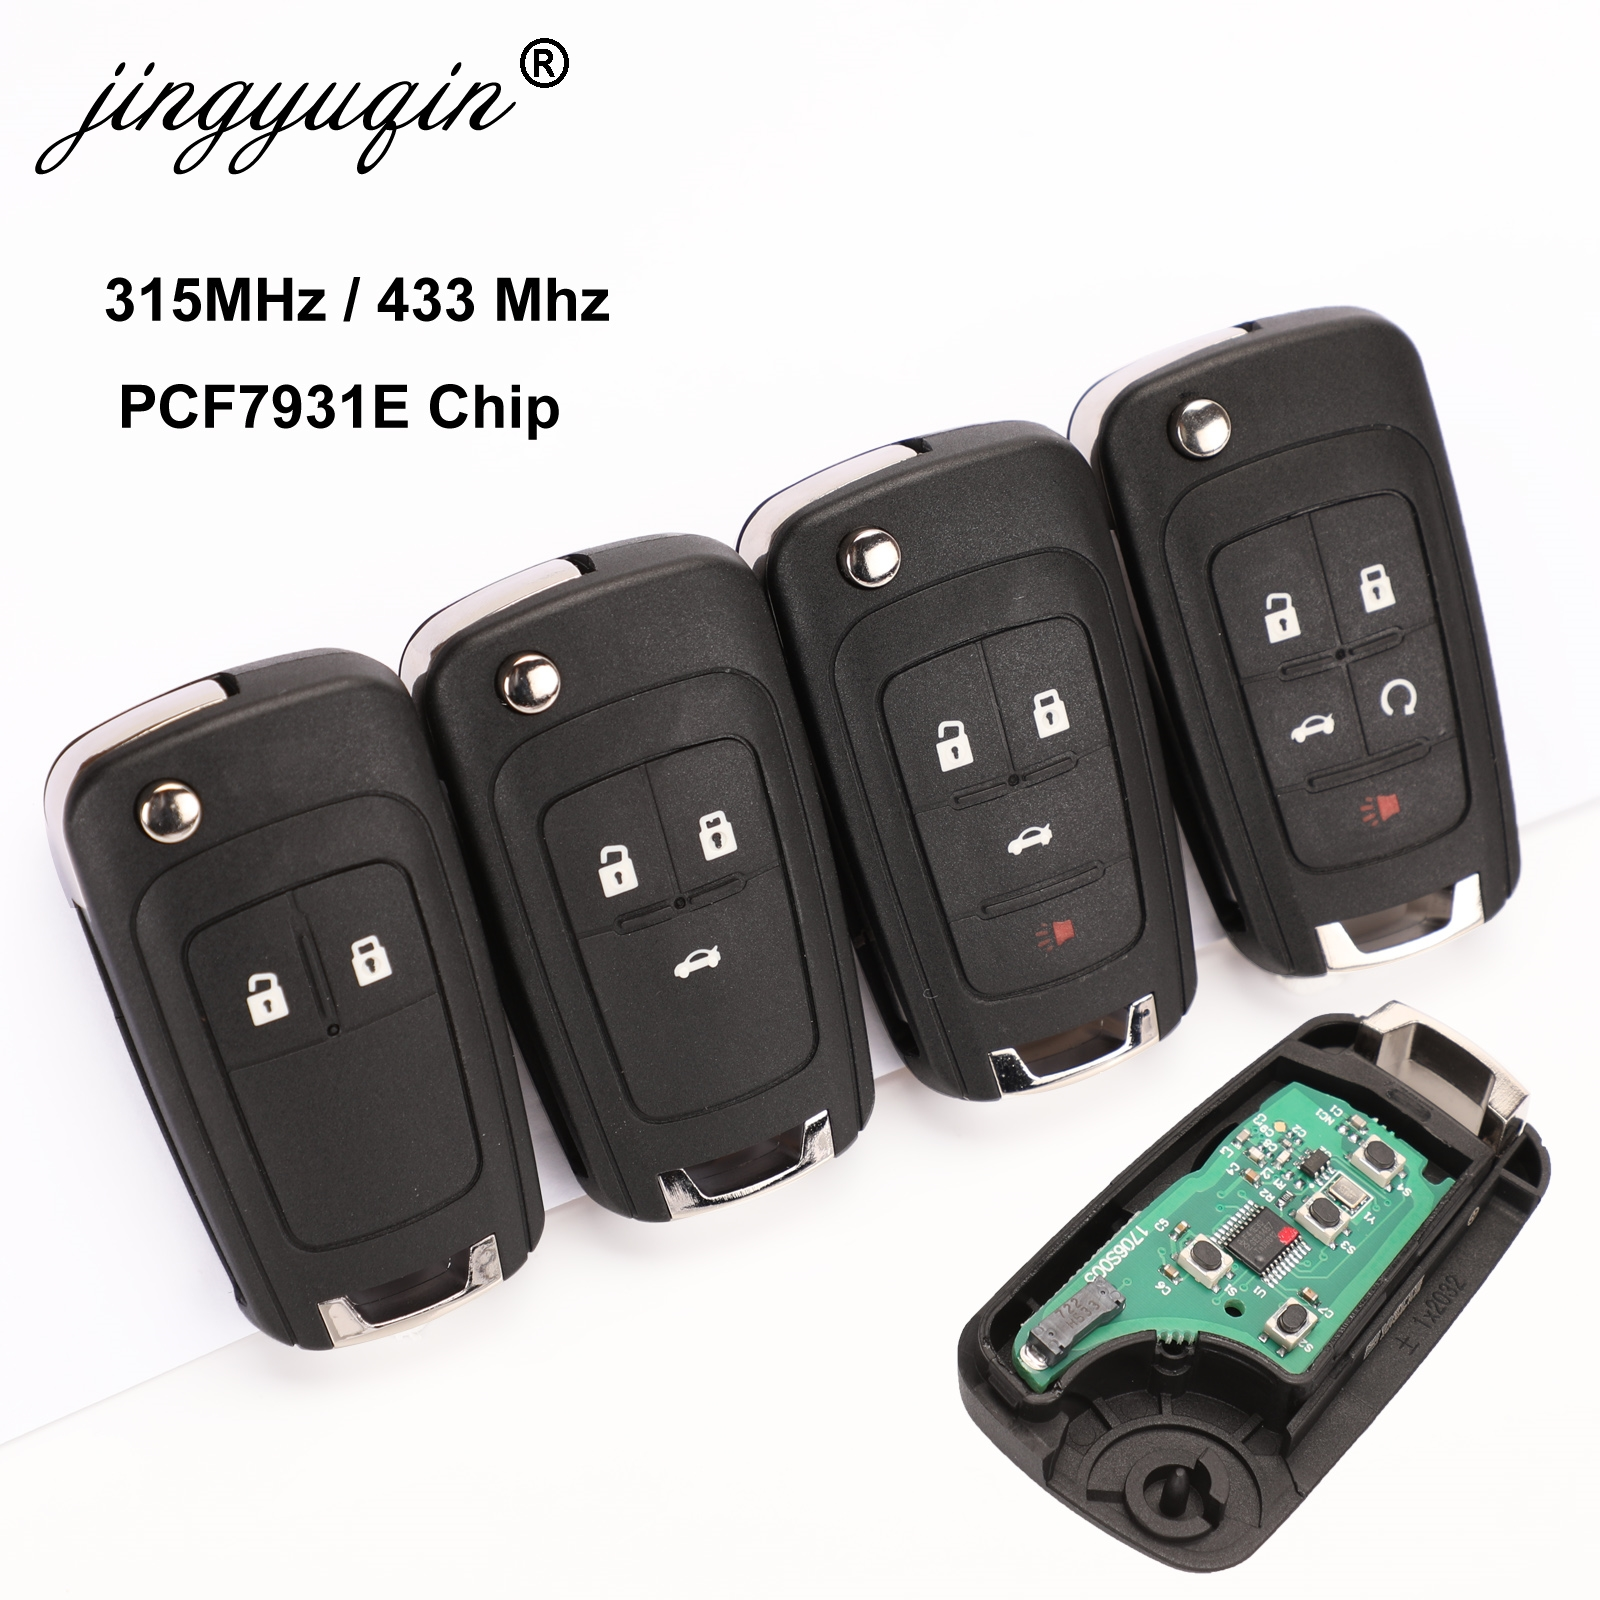 Jingyuqin 10pcs/lot 2/3/4 Buttons Remote Control Fob Flip Folding Key For Chevrolet Lova Sail Aveo Cruze 315/433Mhz PCF7937E